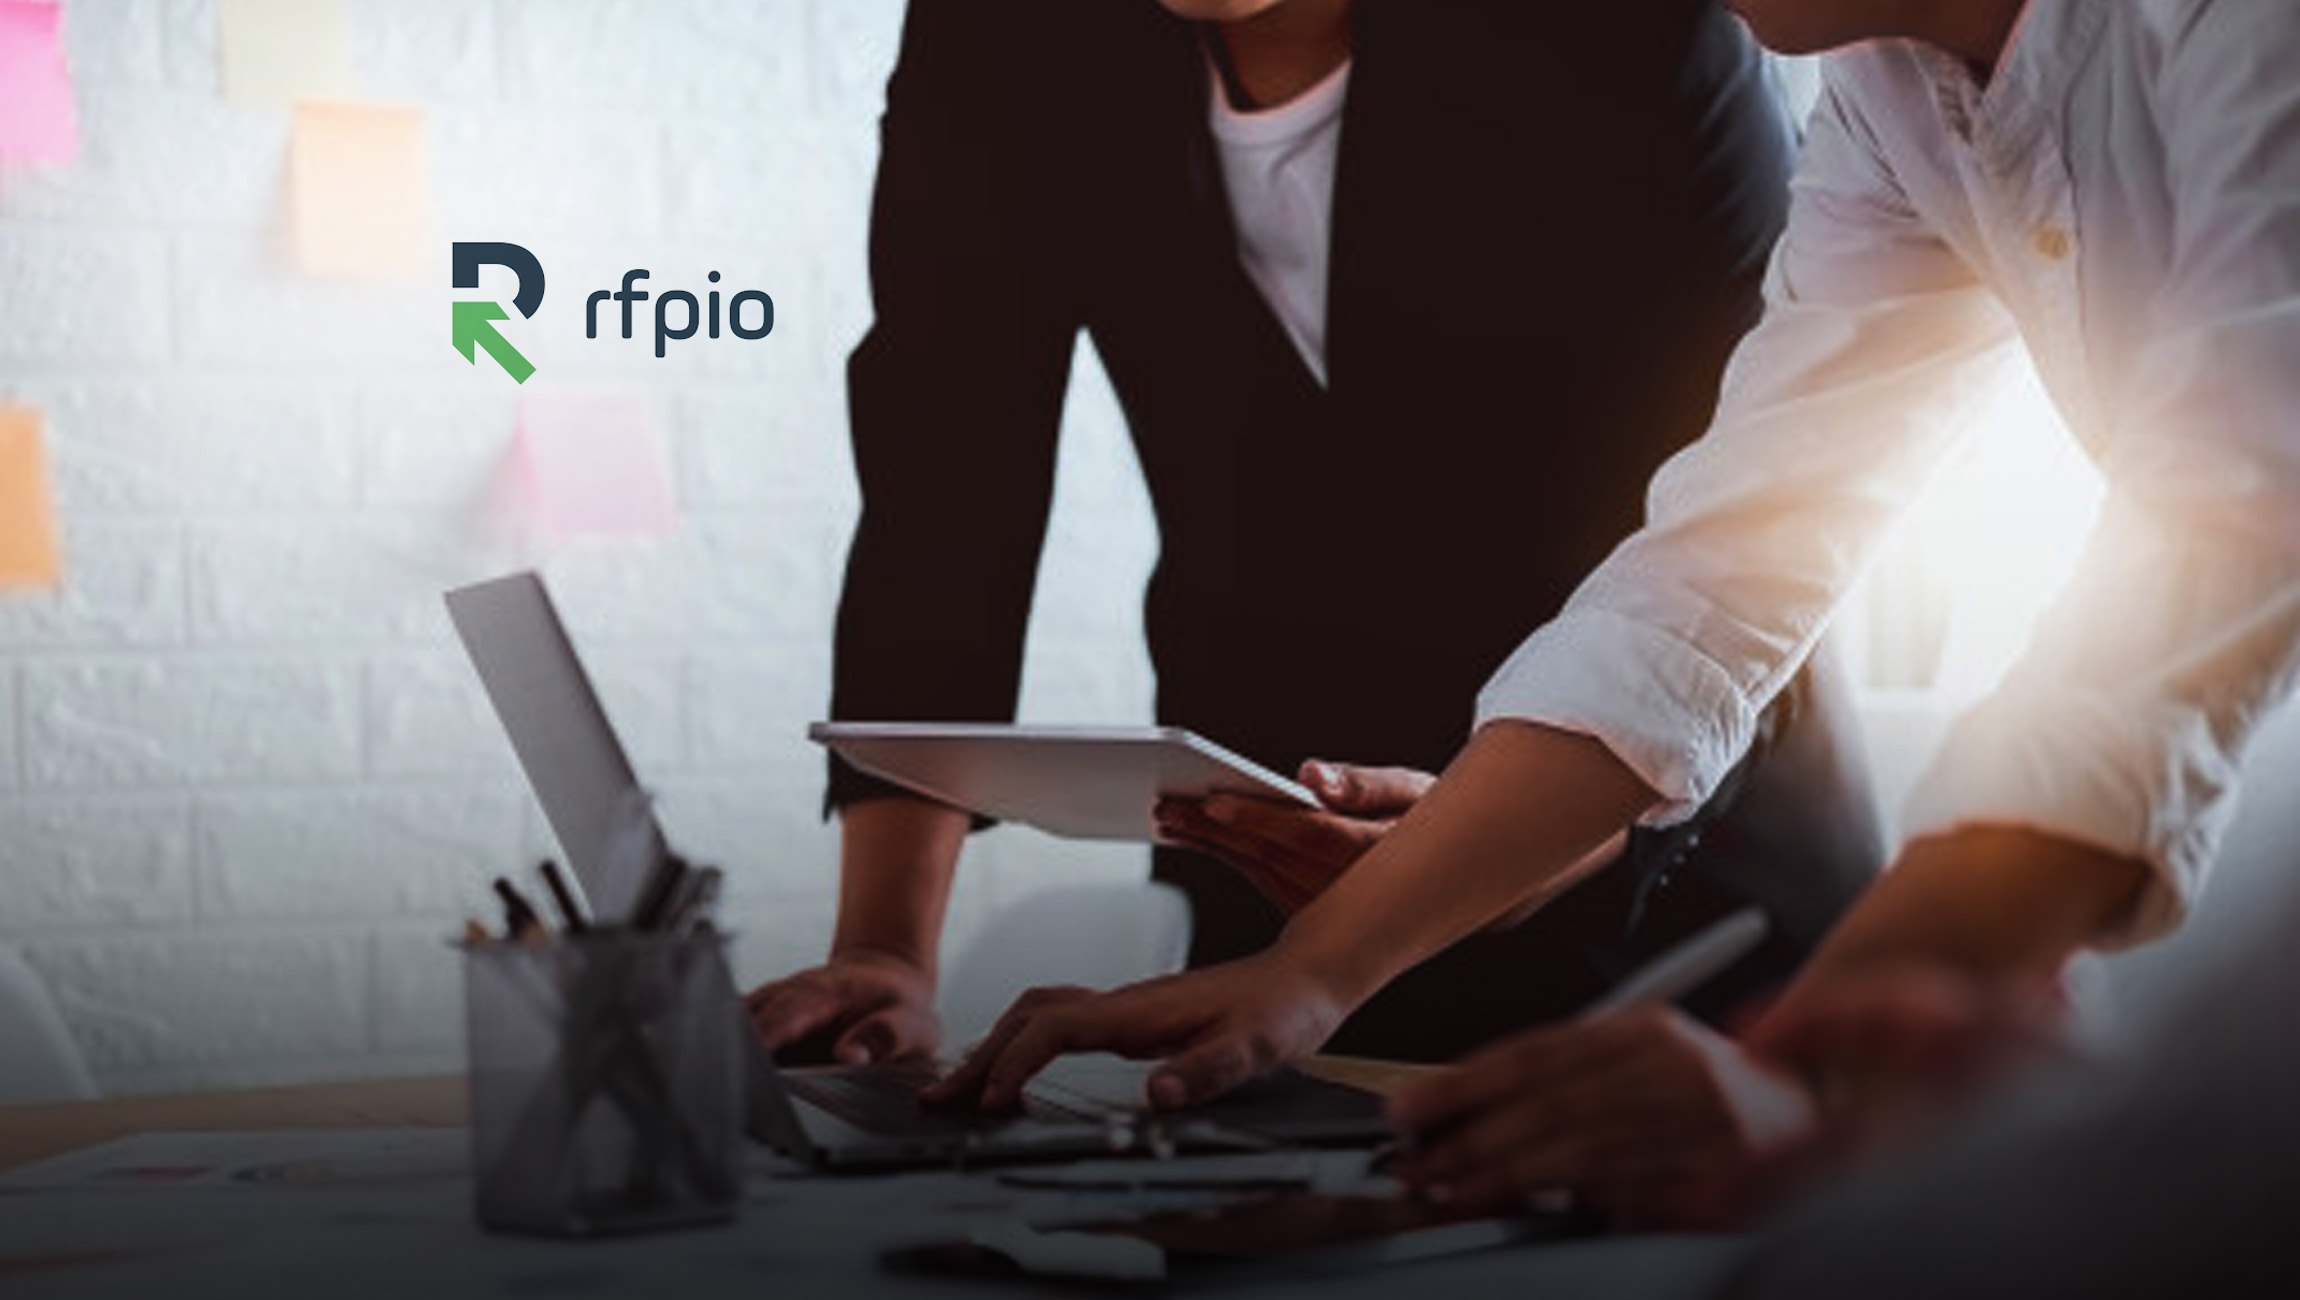 RFPIO Announces Integration and Partnership with Whistic to Streamline Security Questionnaire Response